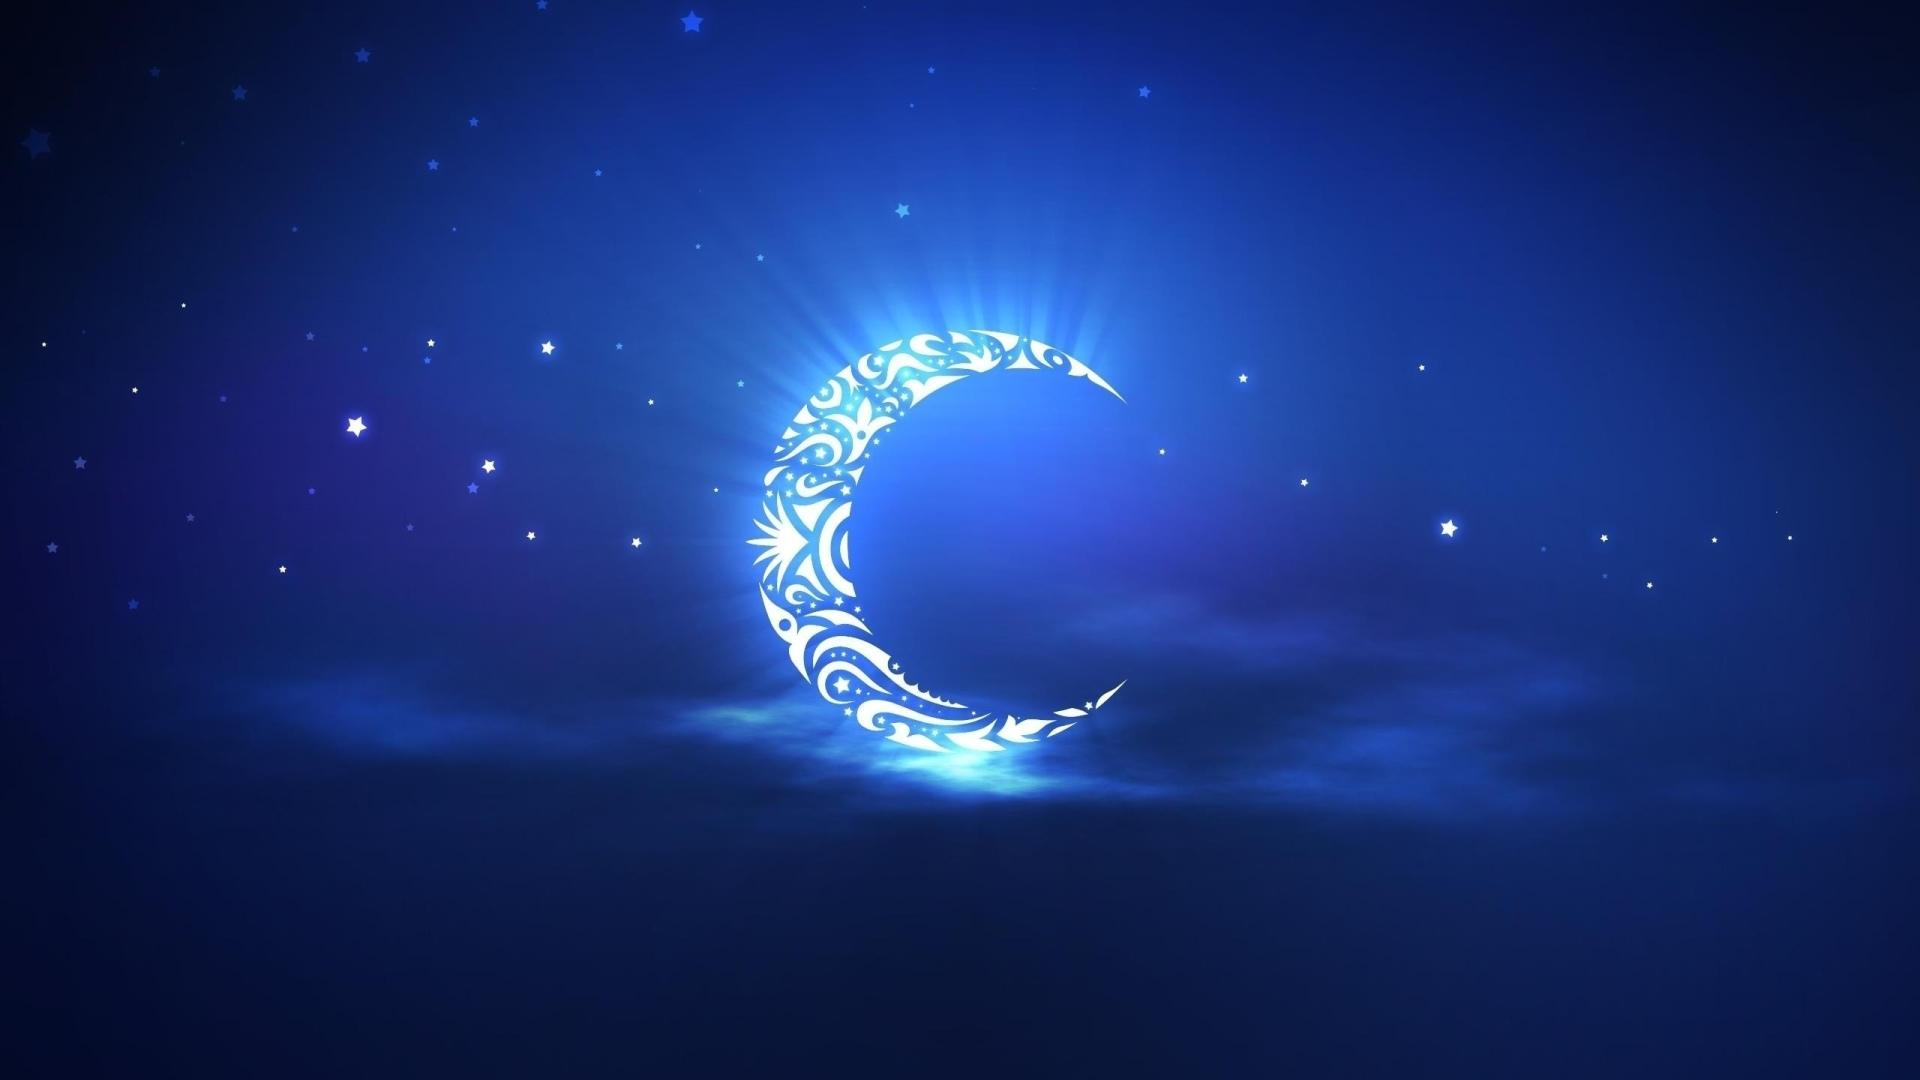 Crescent Artistic wallpapers HD quality